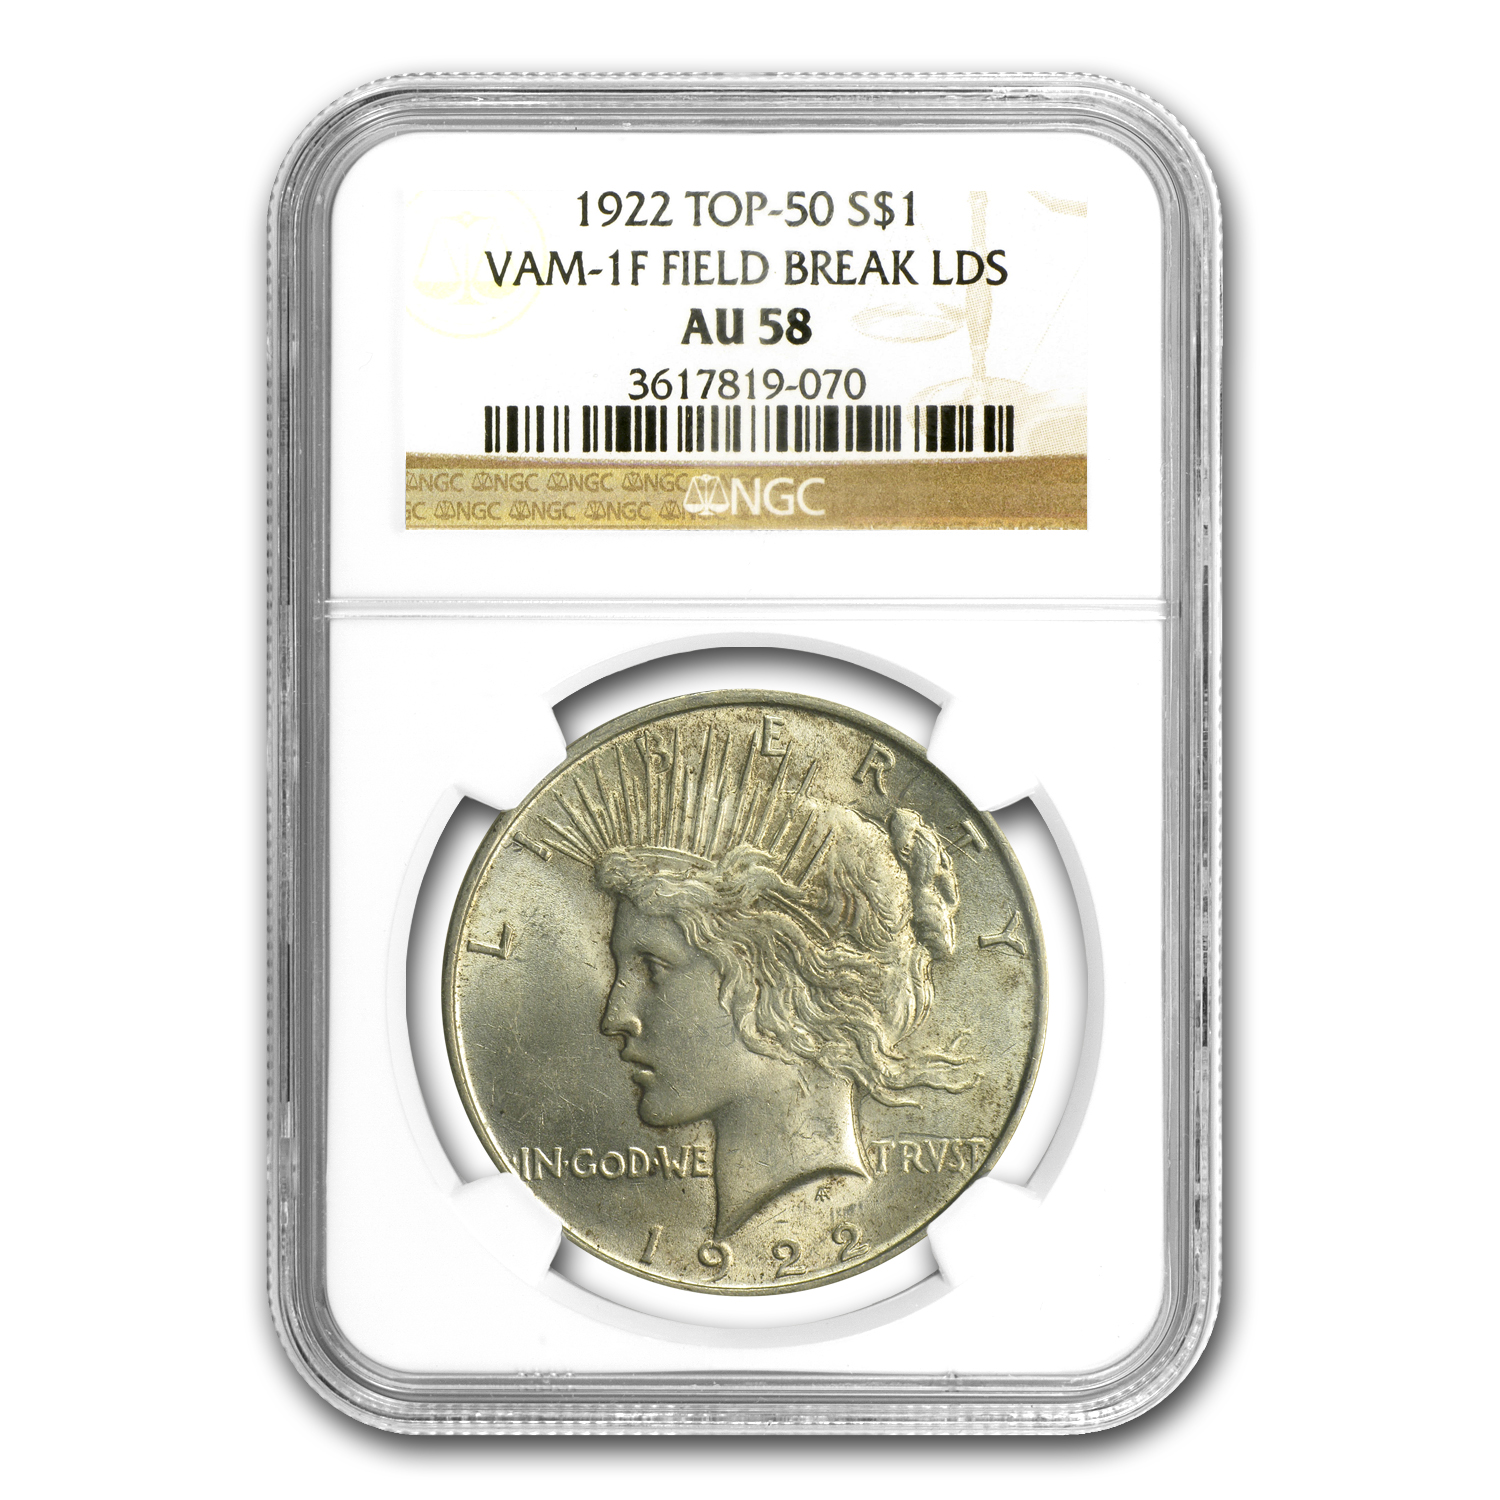 1922 Peace Dollar AU-58 NGC (VAM-1F LDS Field Die Break, Top-50)